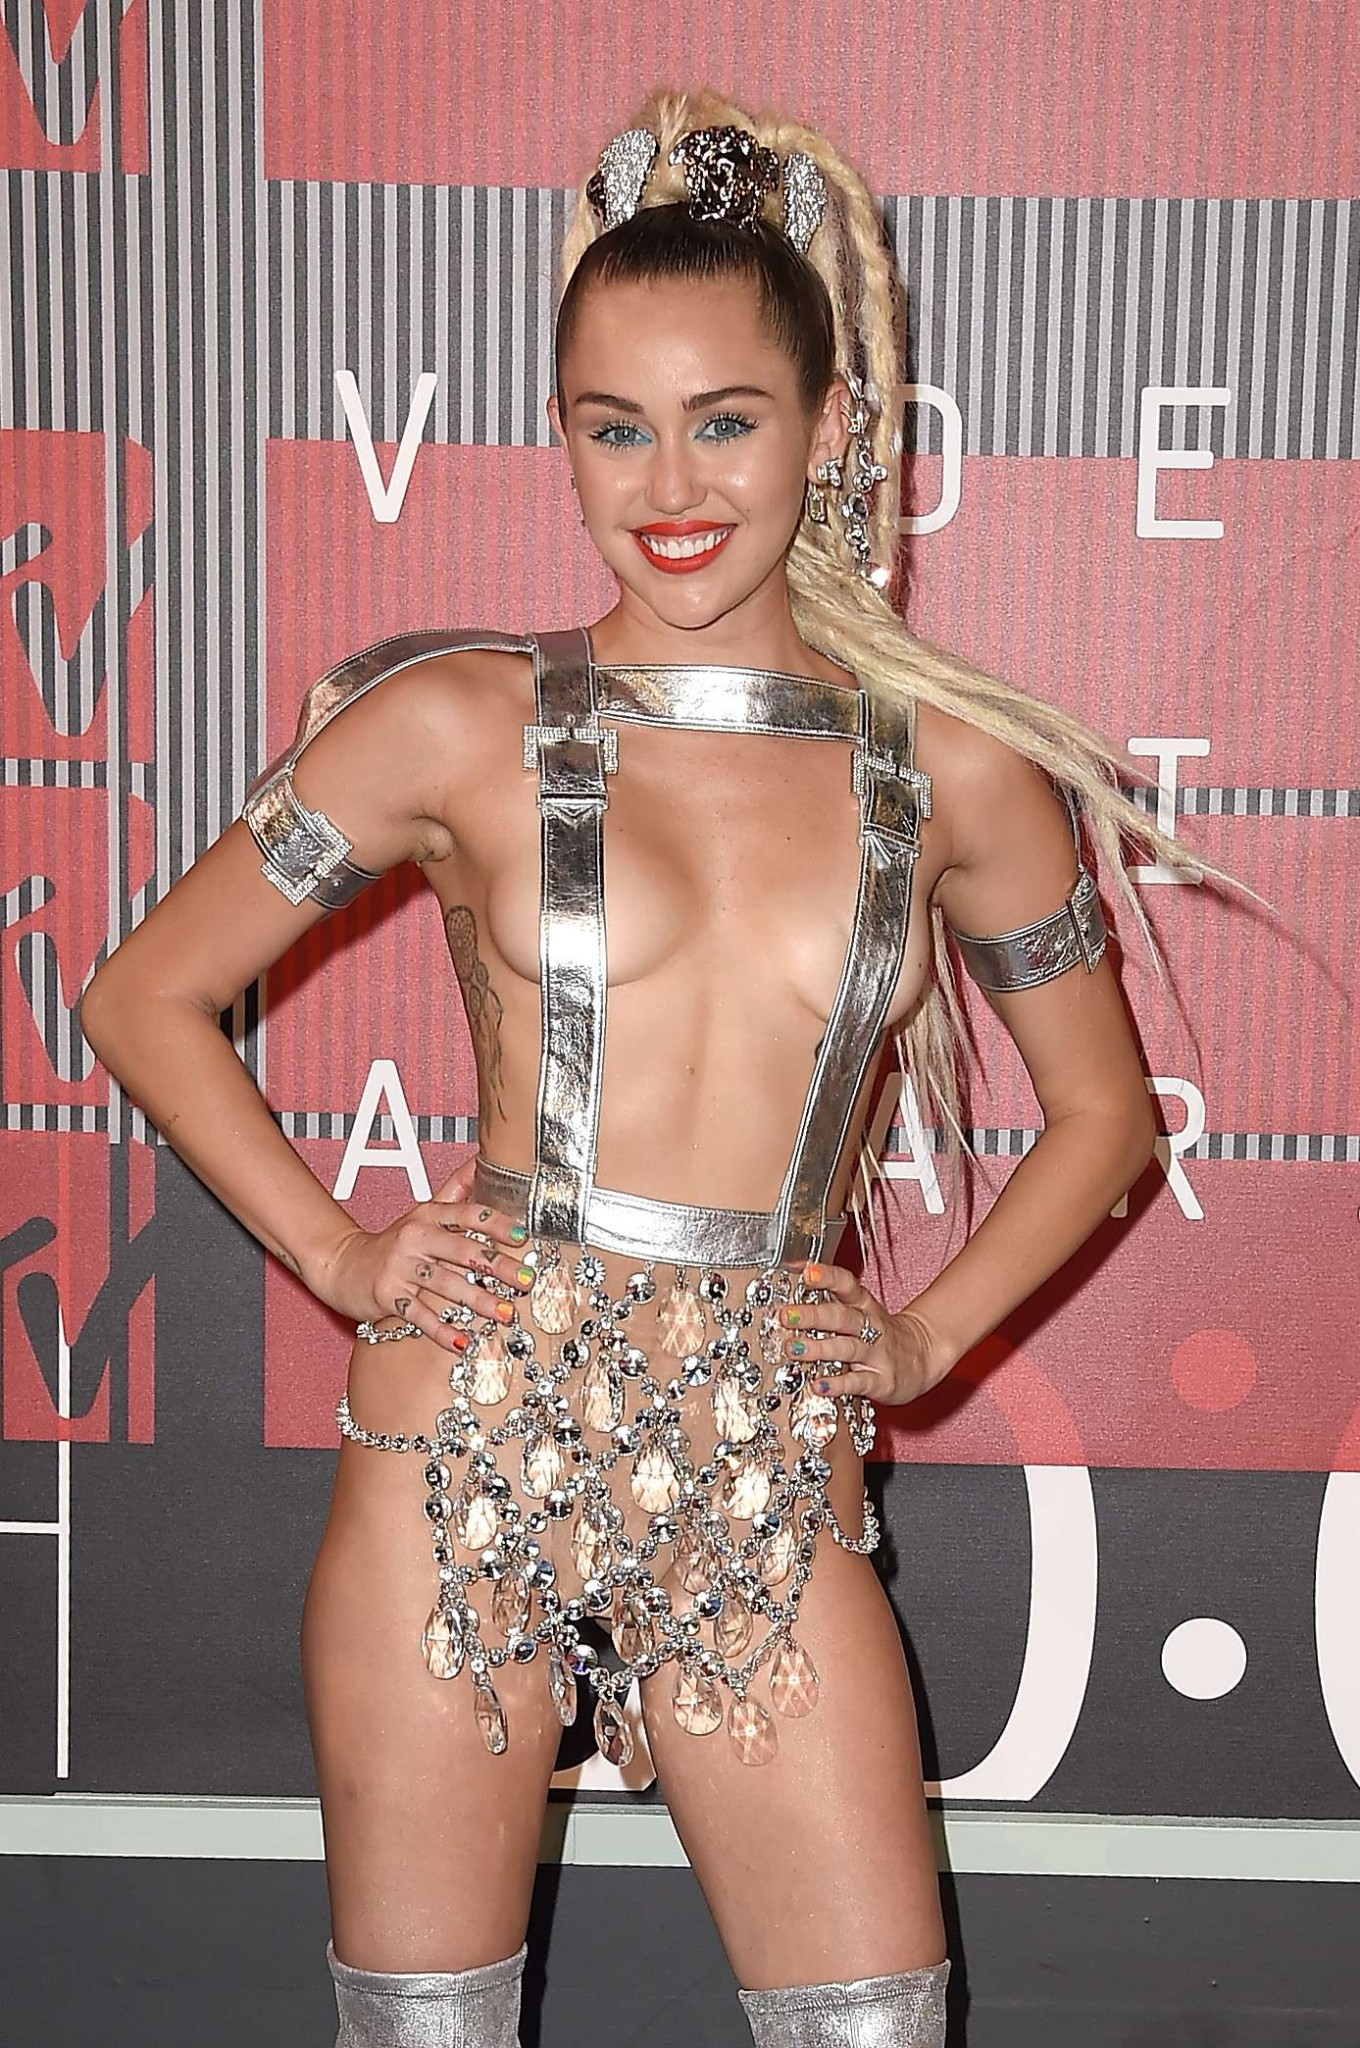 Very valuable Miley cyrus porn nude consider